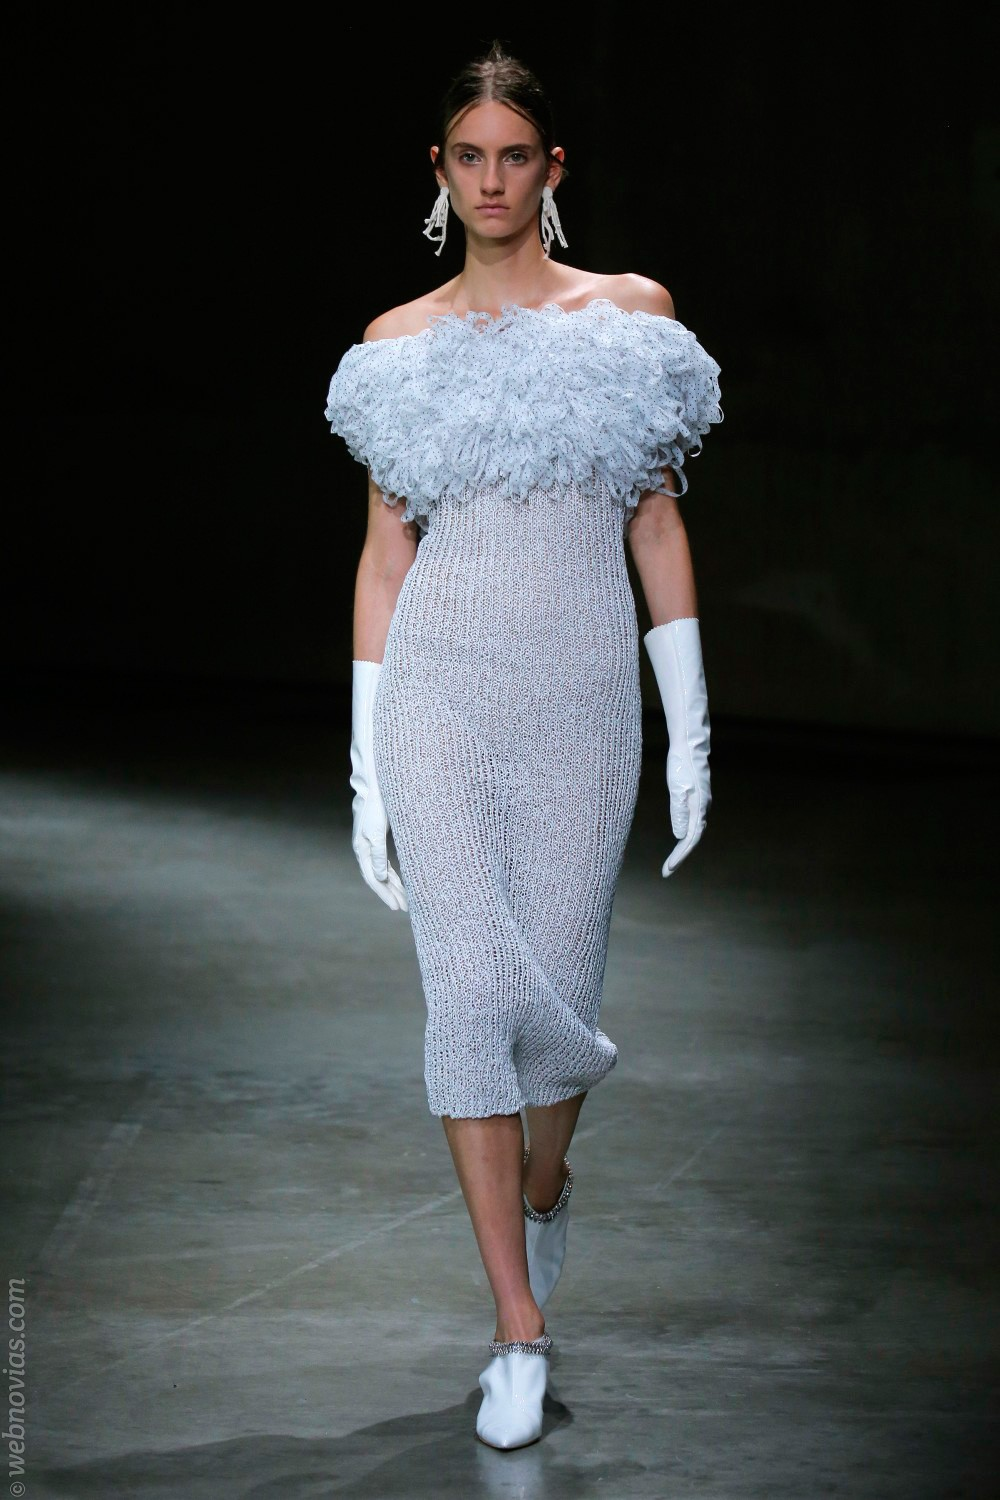 London Fashion Week: inspiración para novias urbanas